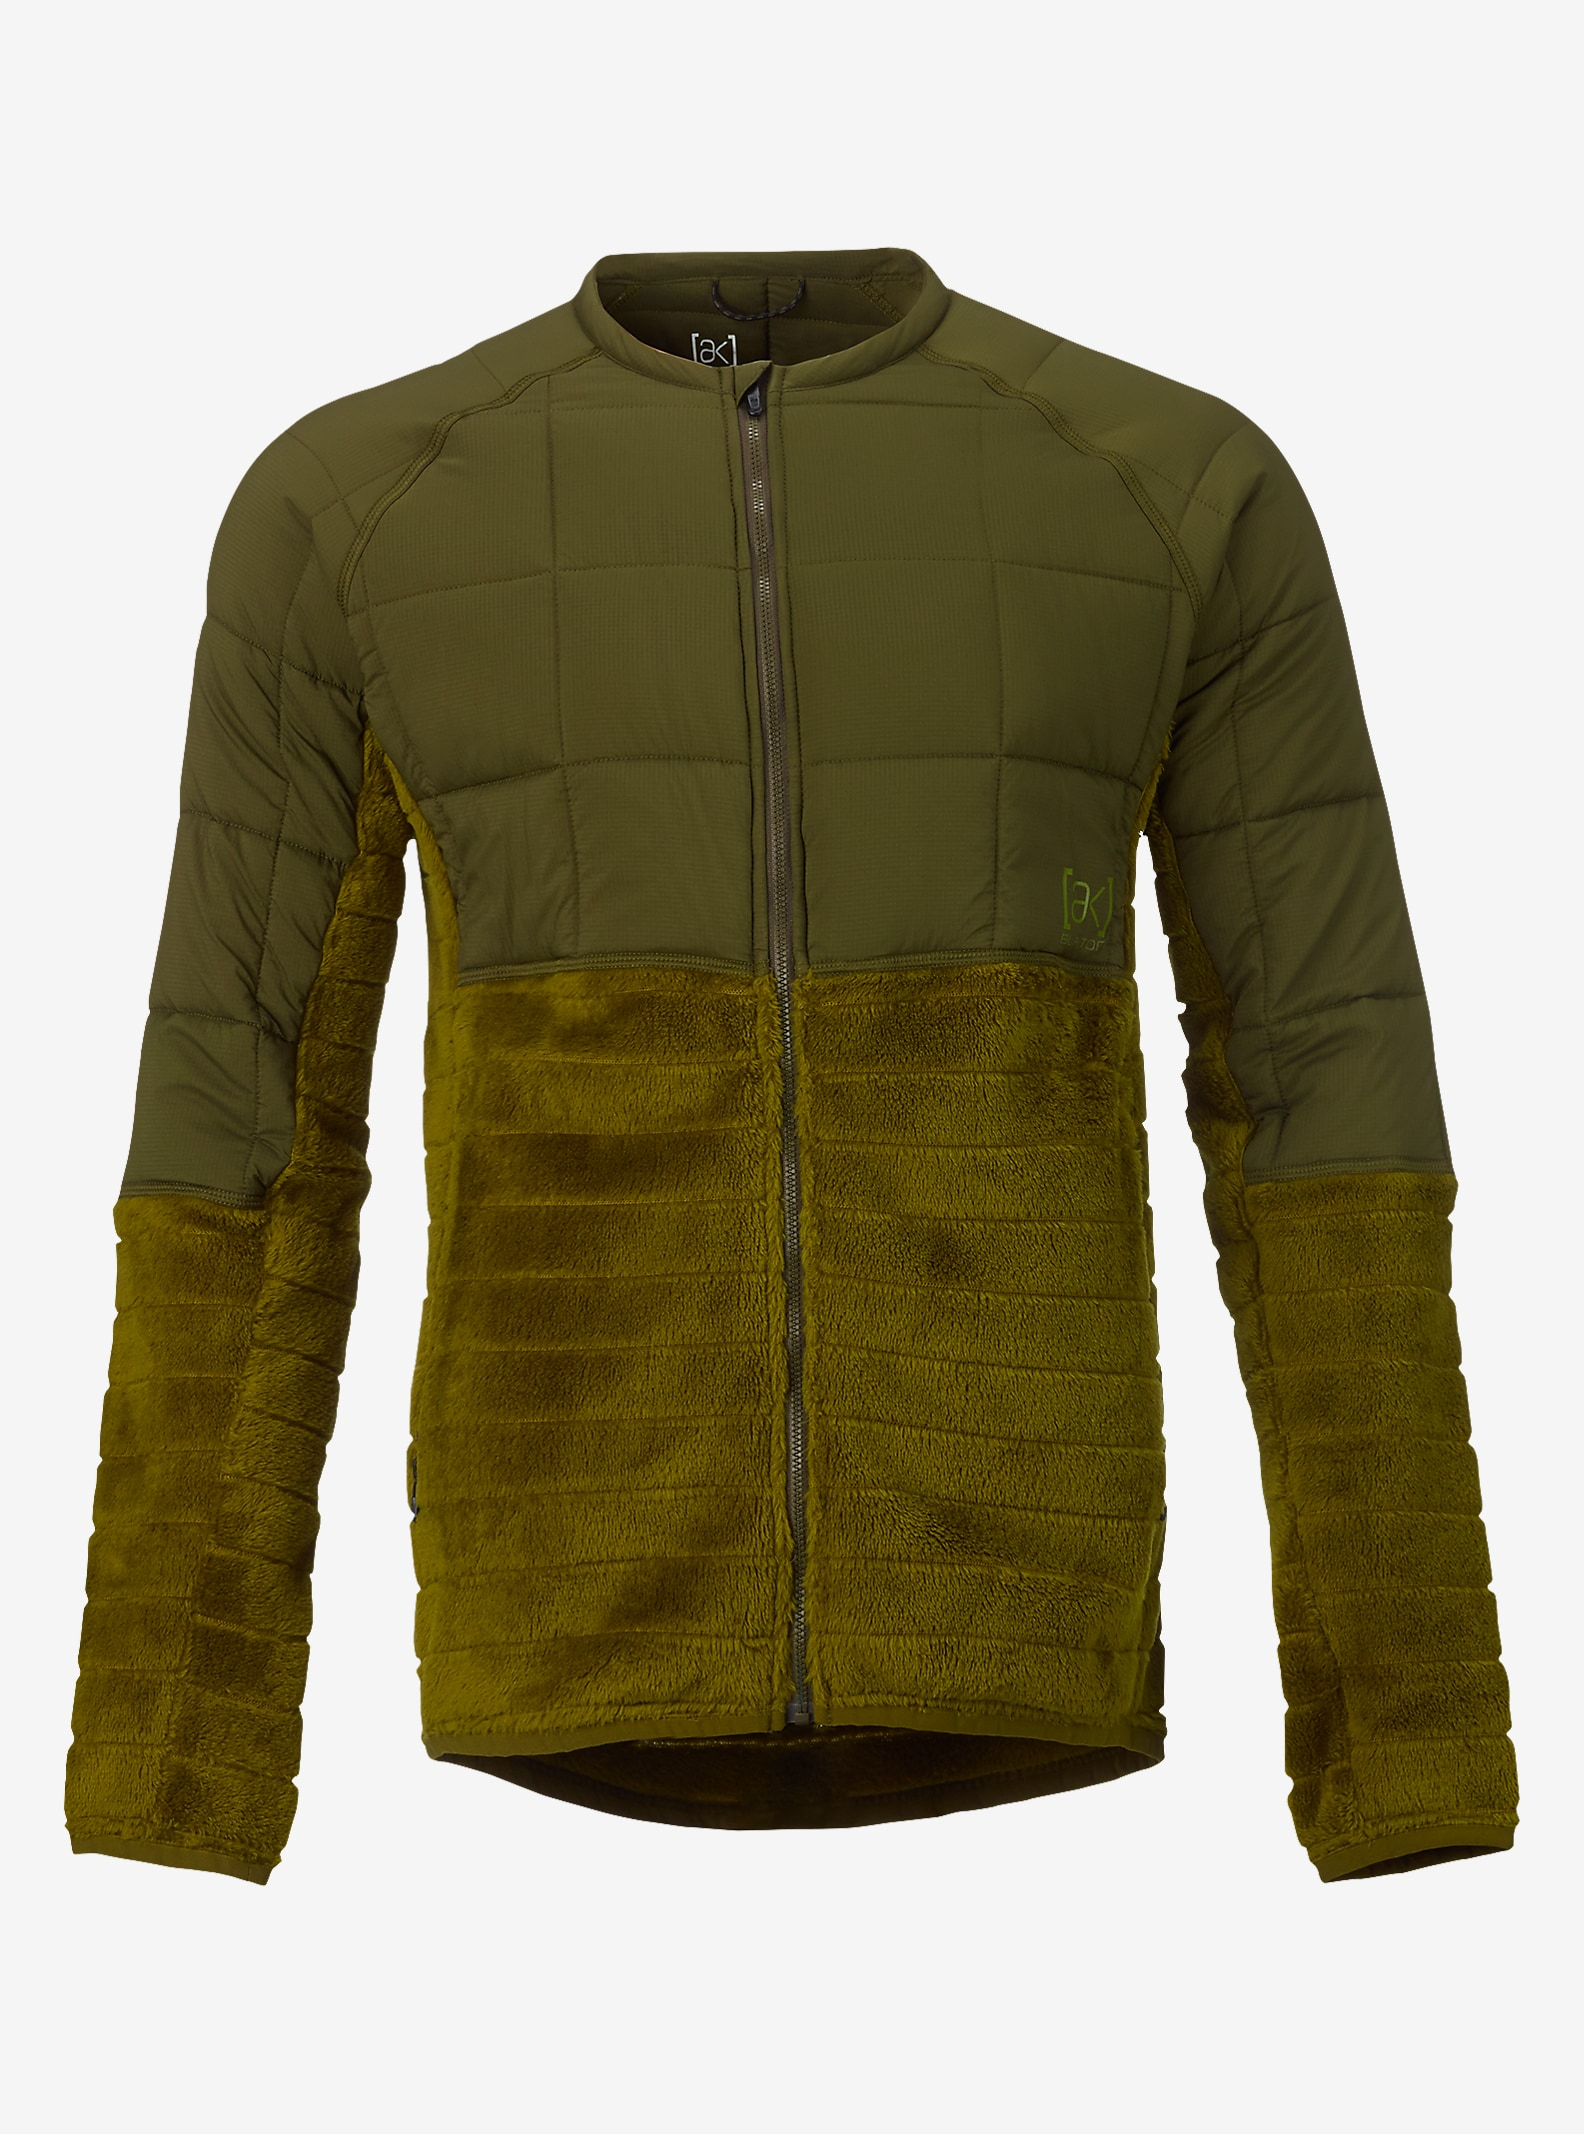 Burton - Manteau isolant [ak] Hybrid affichage en Jungle / Fir